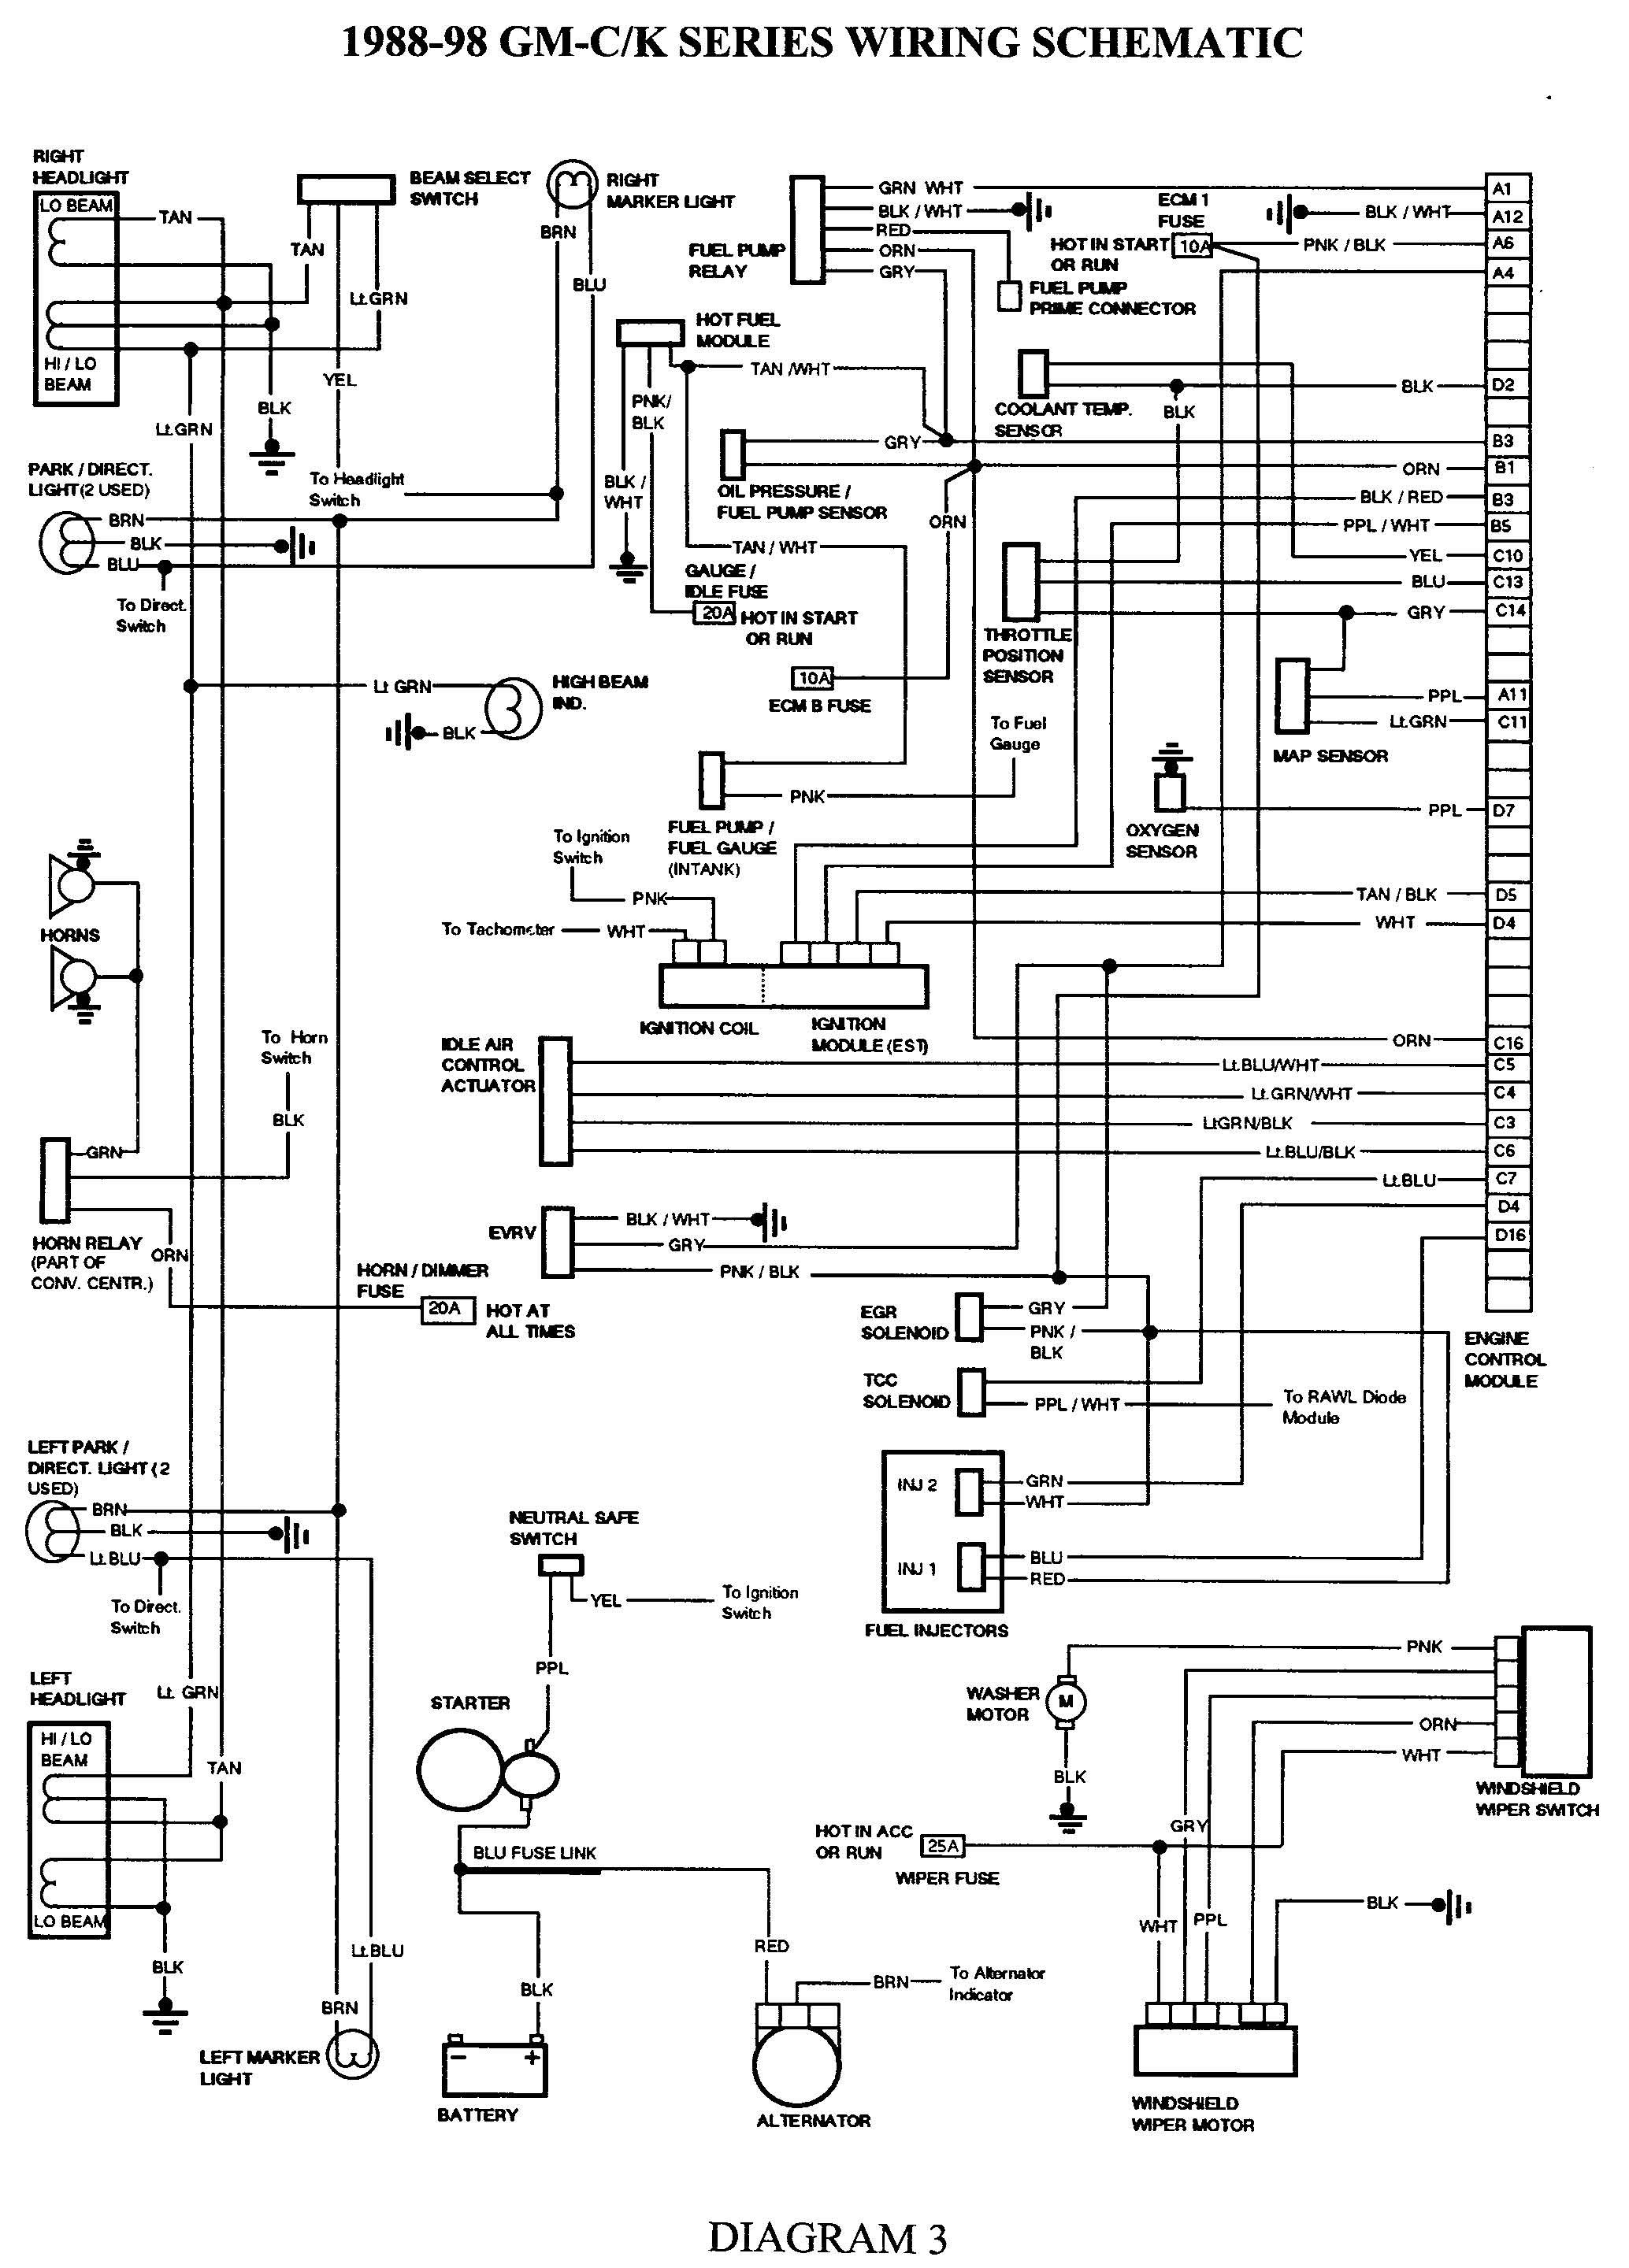 4 3 vortec engine wiring diagram ecu wiring diagram for you 4 3 vortec engine performance parts 4 3 vortec wiring harness [ 2068 x 2880 Pixel ]